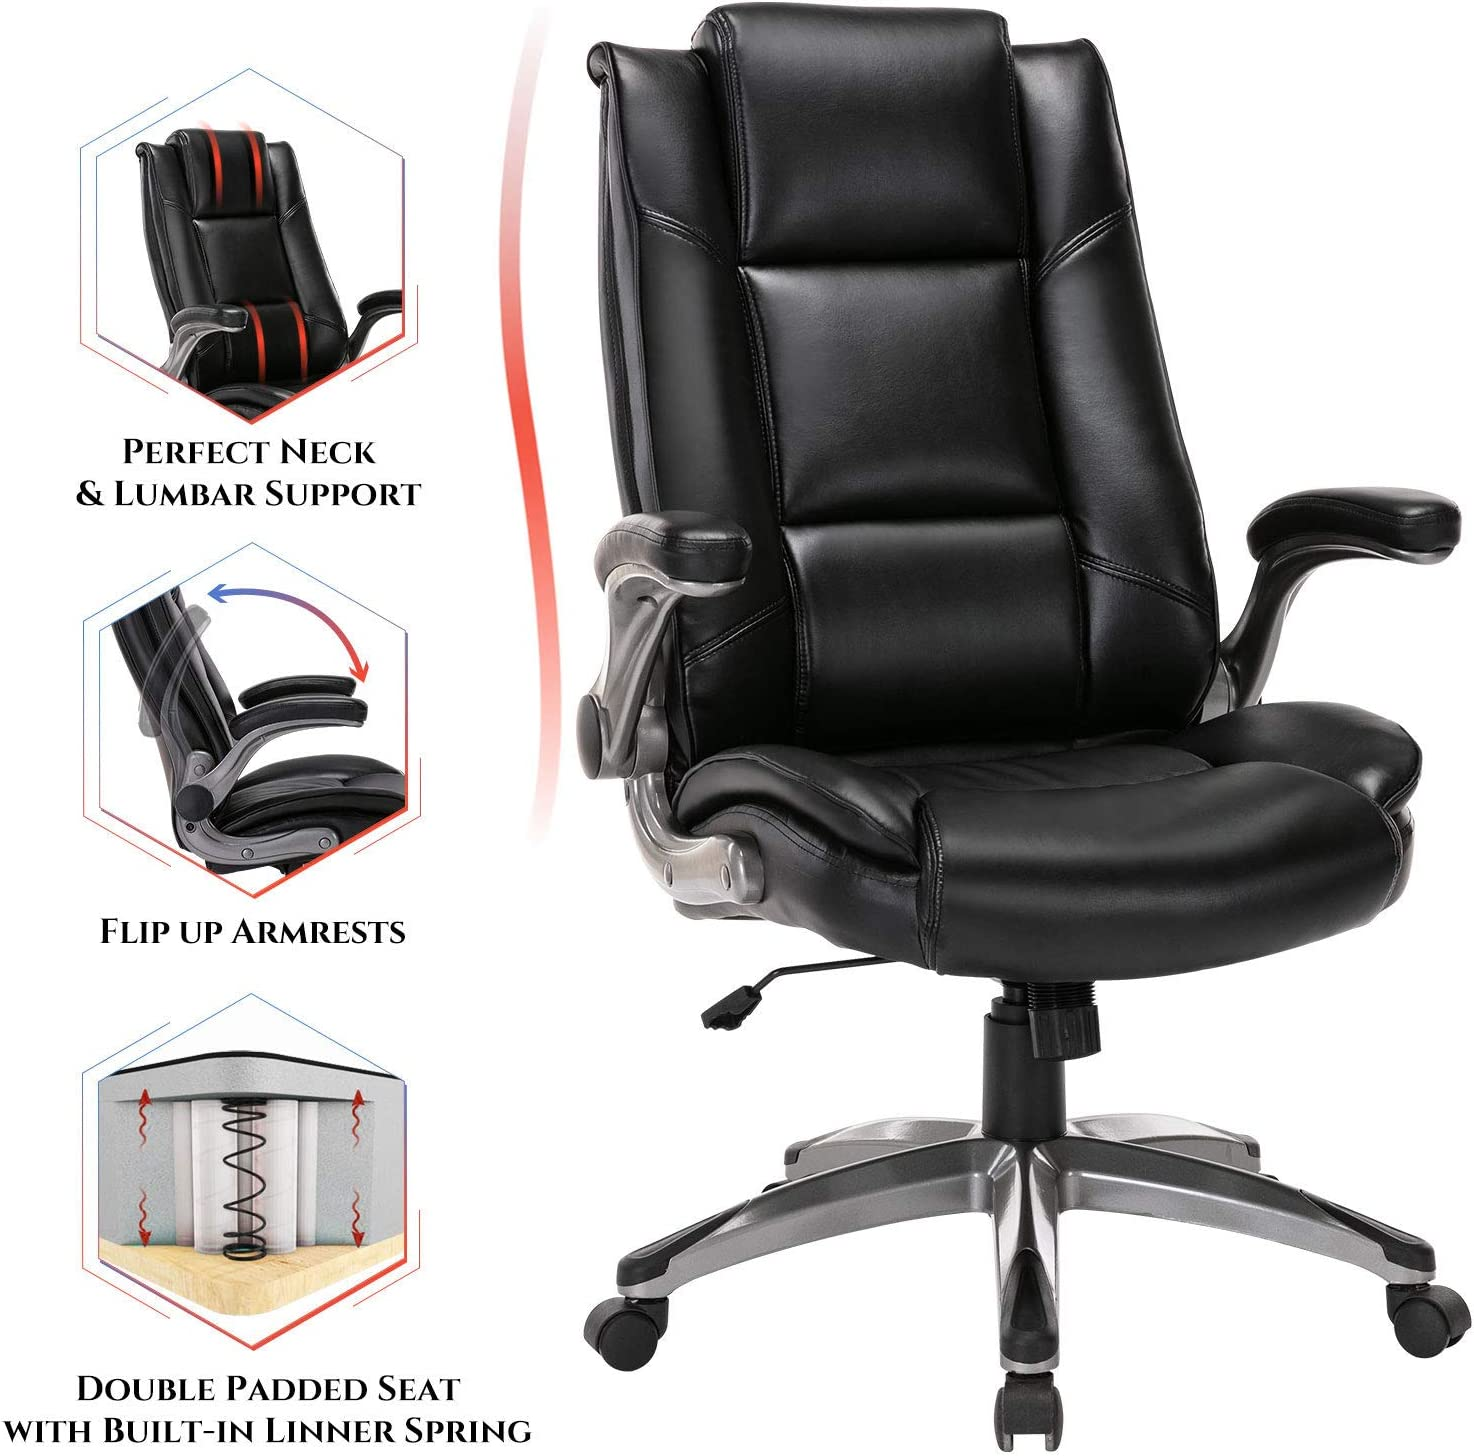 Office Chair High Back Leather Executive Computer Desk Chair - Flip-up Arms and Adjustable Tilt Angle Swivel Chair